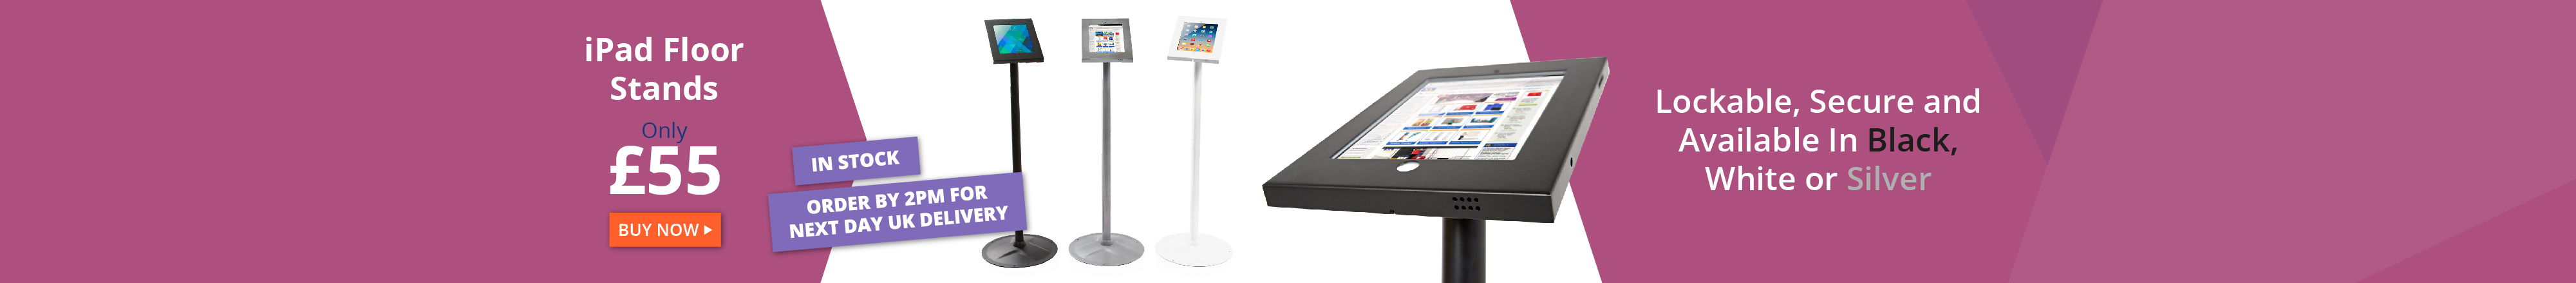 iPad-Floor-Stands-XL-Displays_2019